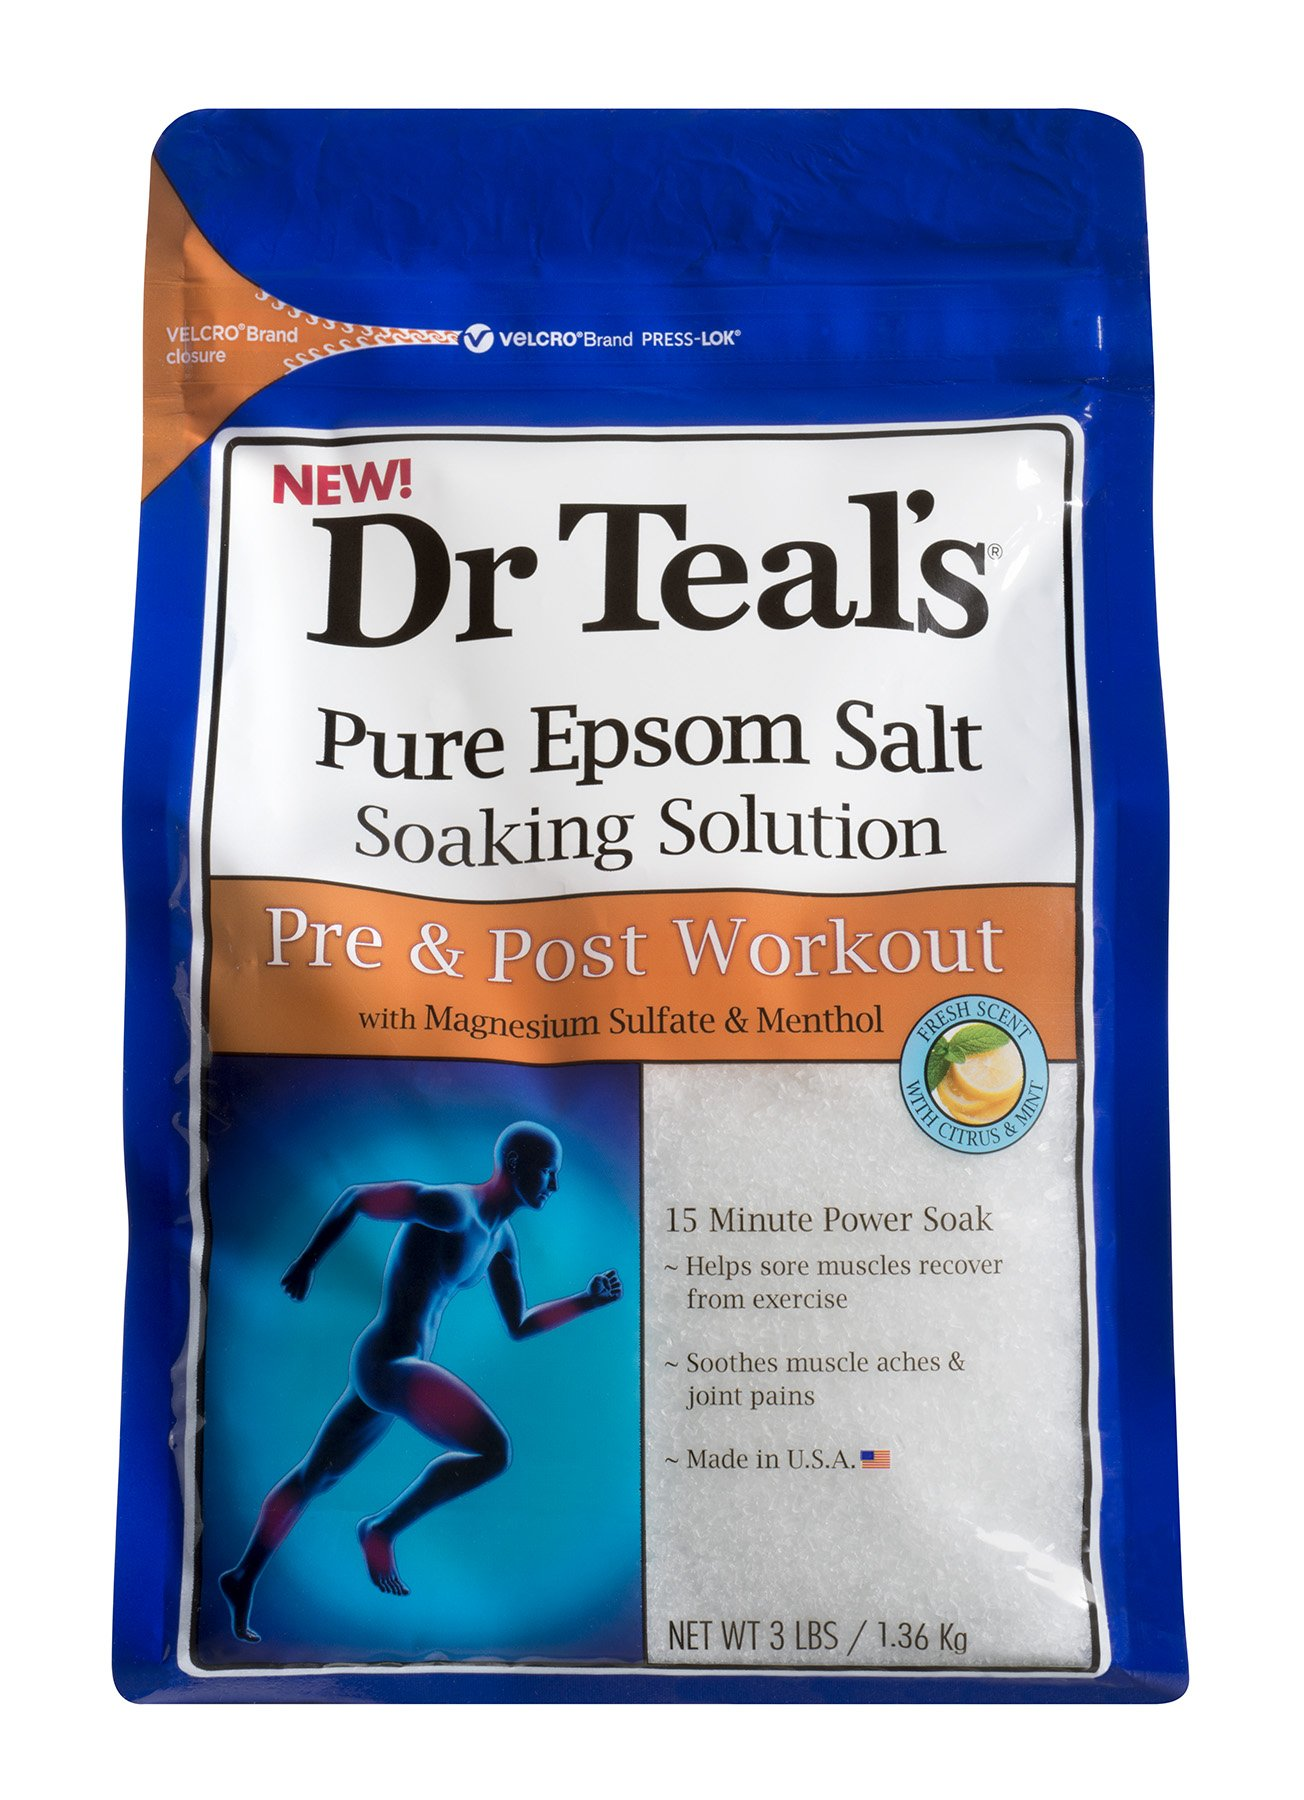 Dr Teal's Pure Epsom Salt Soaking Solution for Pre and Post Workout with Magnesium Sulfate & Menthol, 1.36 kg